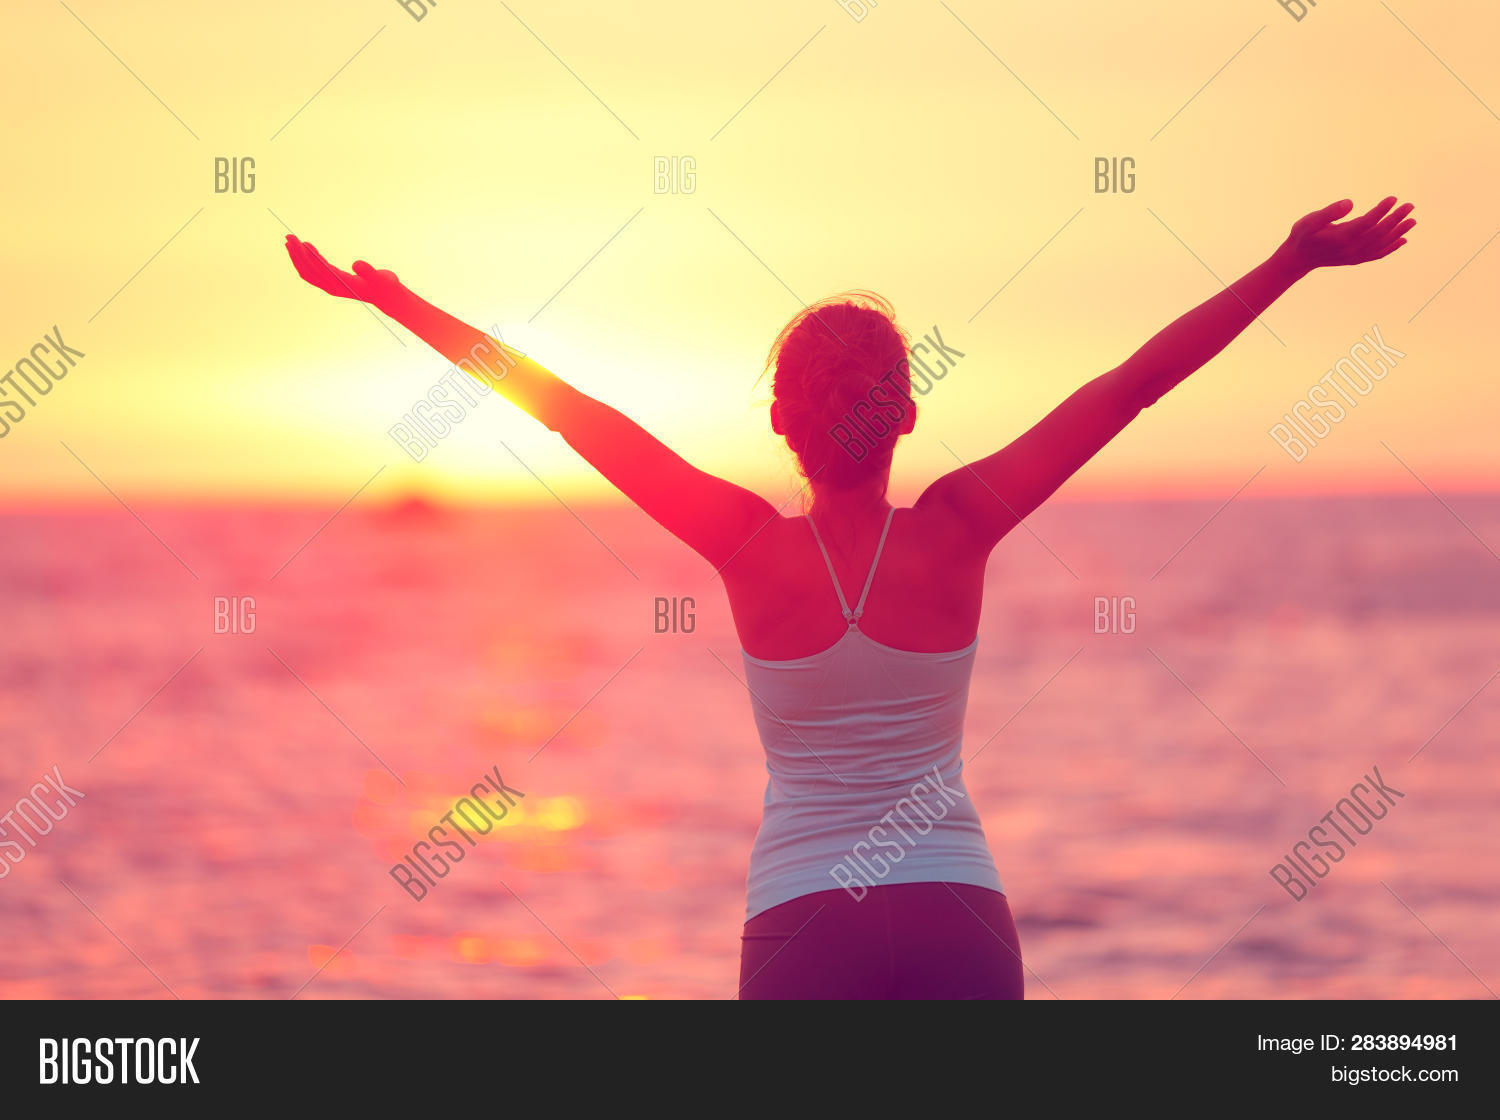 Wellness, well-being and happiness concept. Silhouette of woman with open arms raised to the sky on